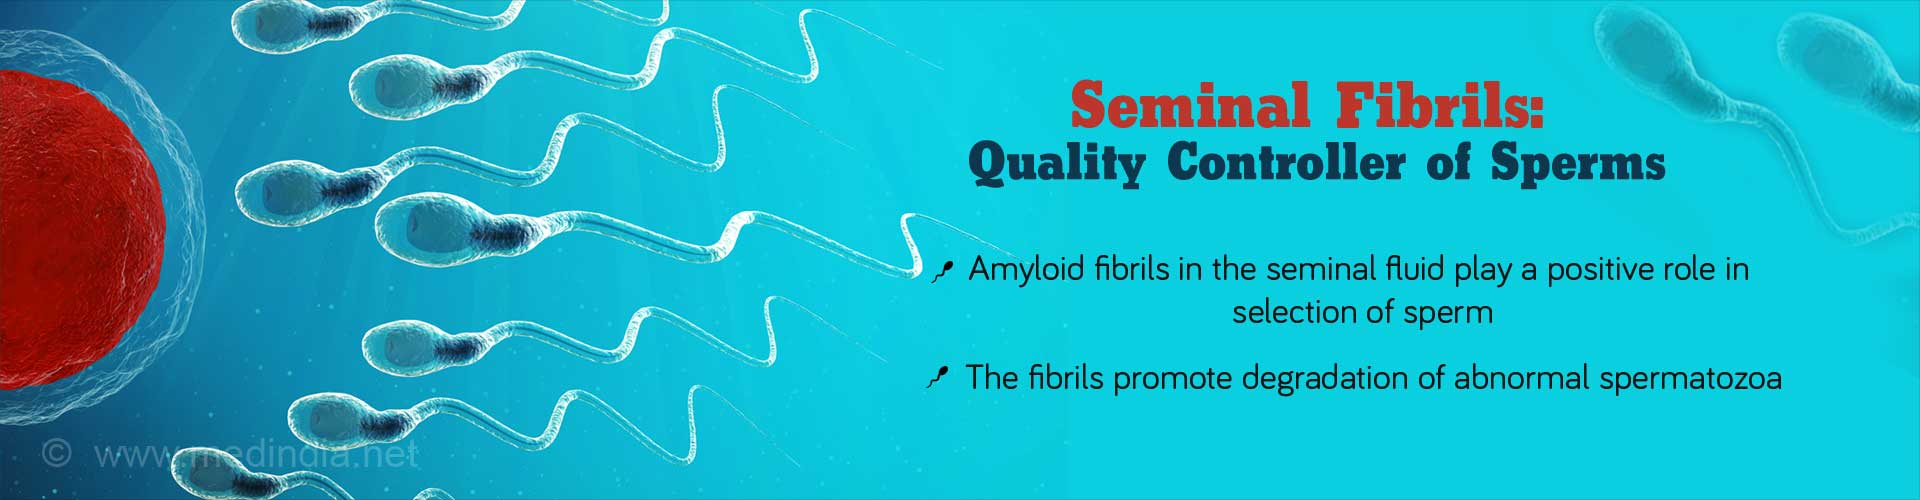 Seminal Fibrils: Quality Controller of Sperms - amyloid fibrils in the seminal fluid play a positive role in selection od sperm - The fibrils promote degradation of abnormal spermatozoa